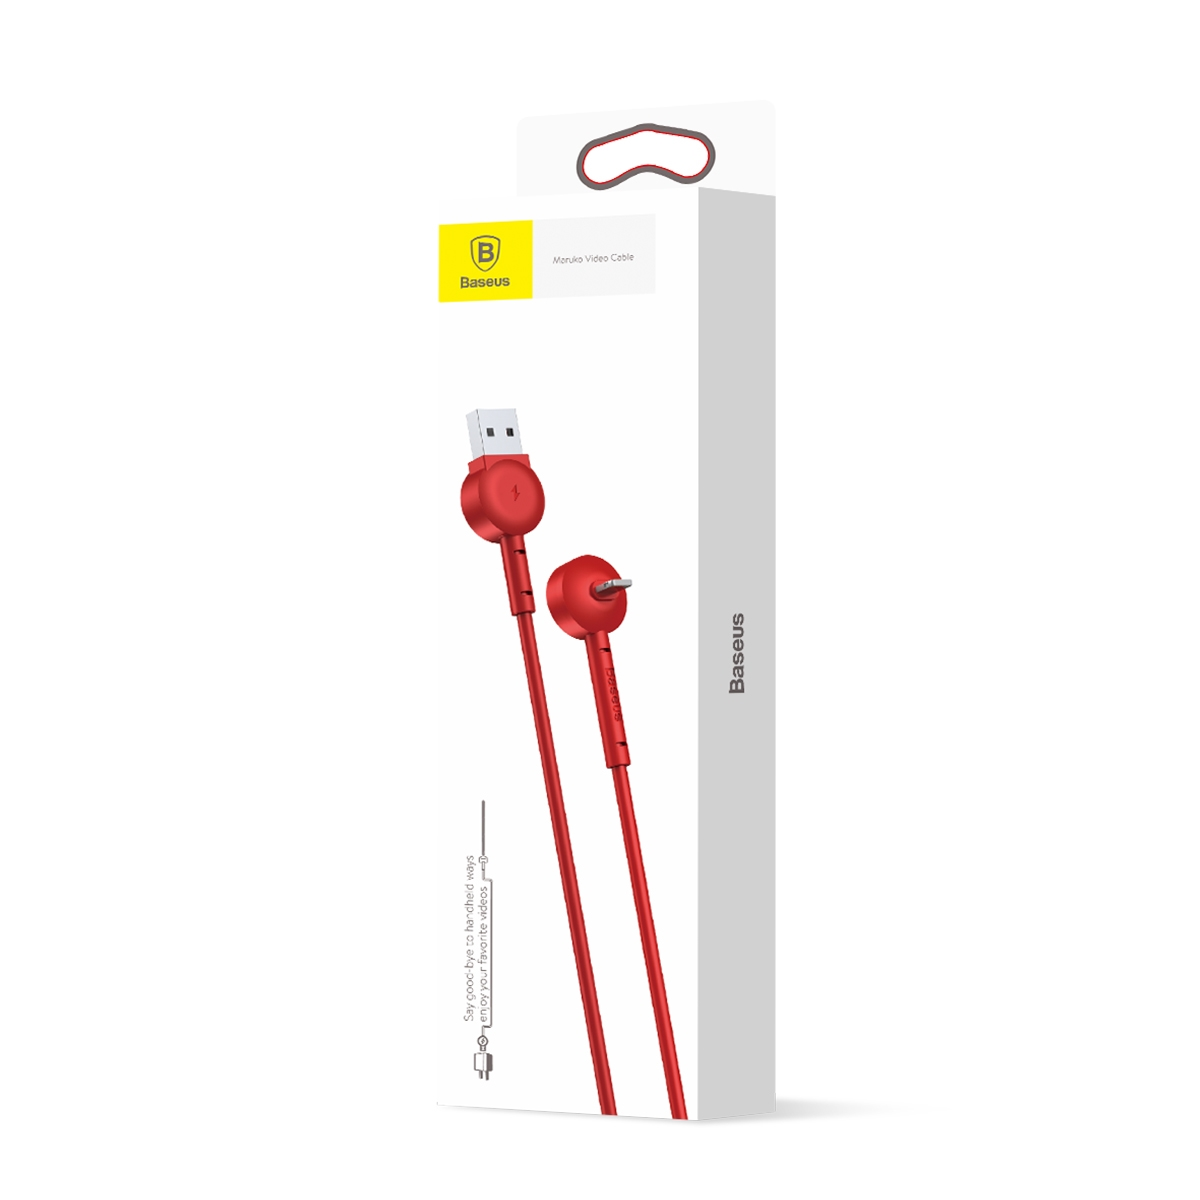 Baseus Maruko Video Cable red CALQX-09